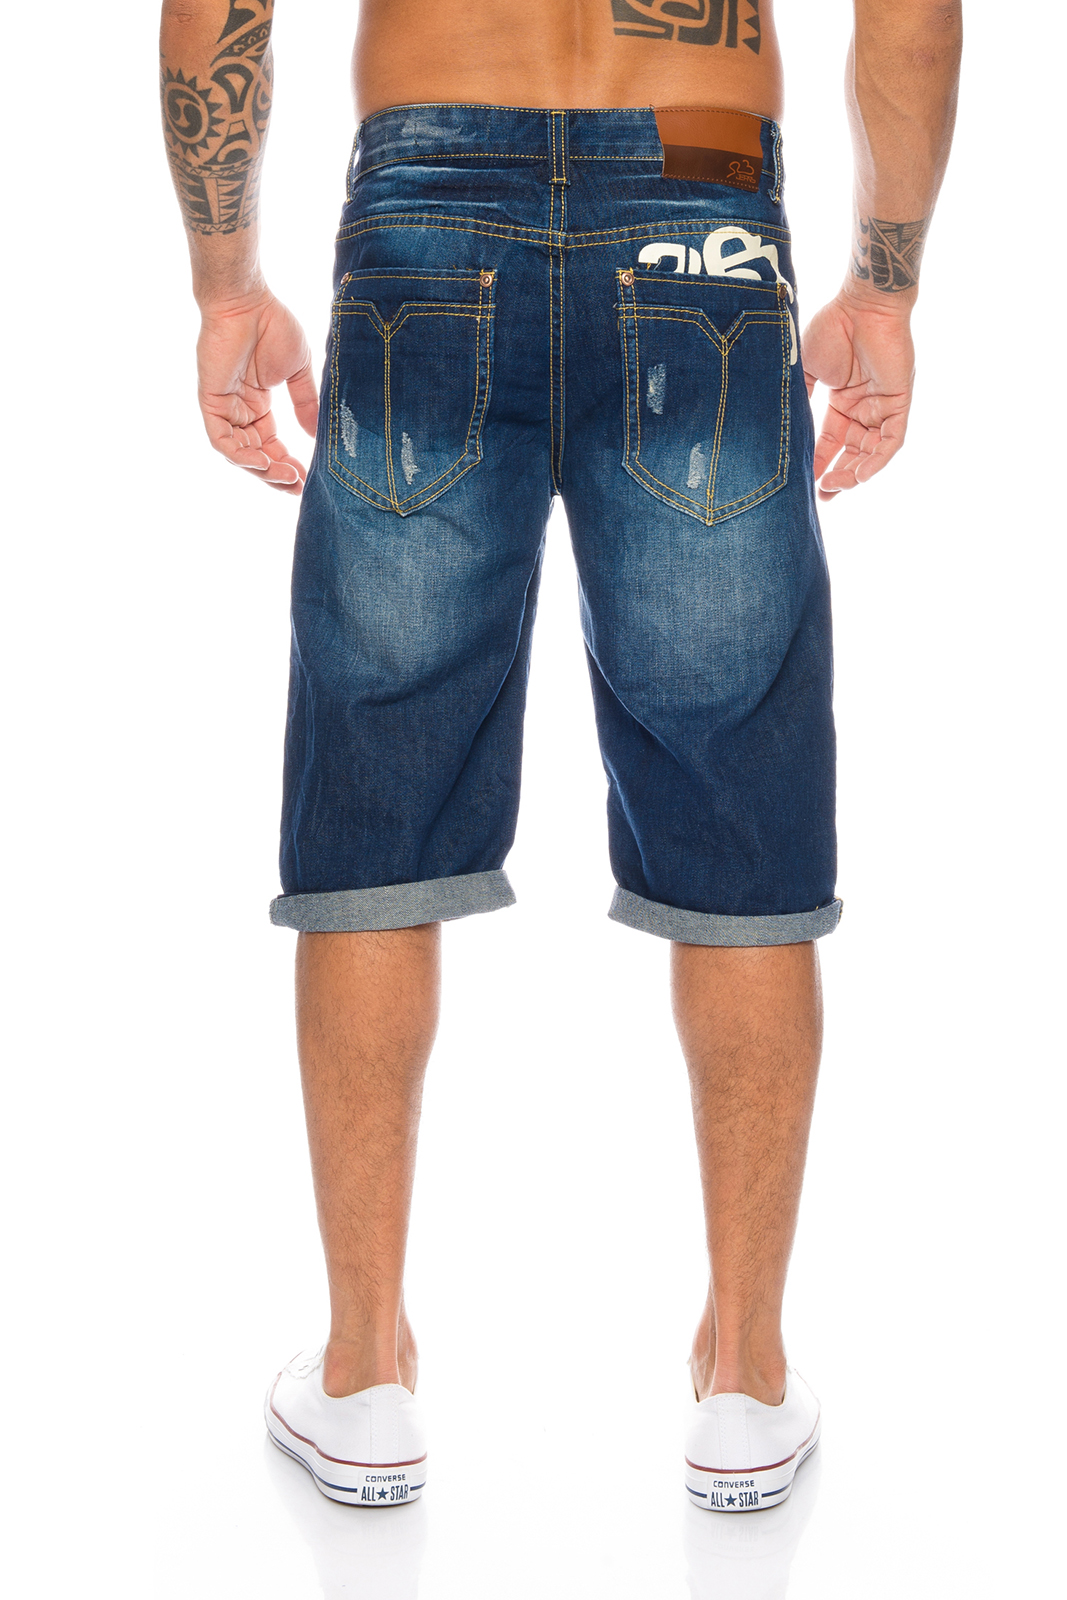 herren jeans short sommer bermuda kurze hose shorts h 073. Black Bedroom Furniture Sets. Home Design Ideas